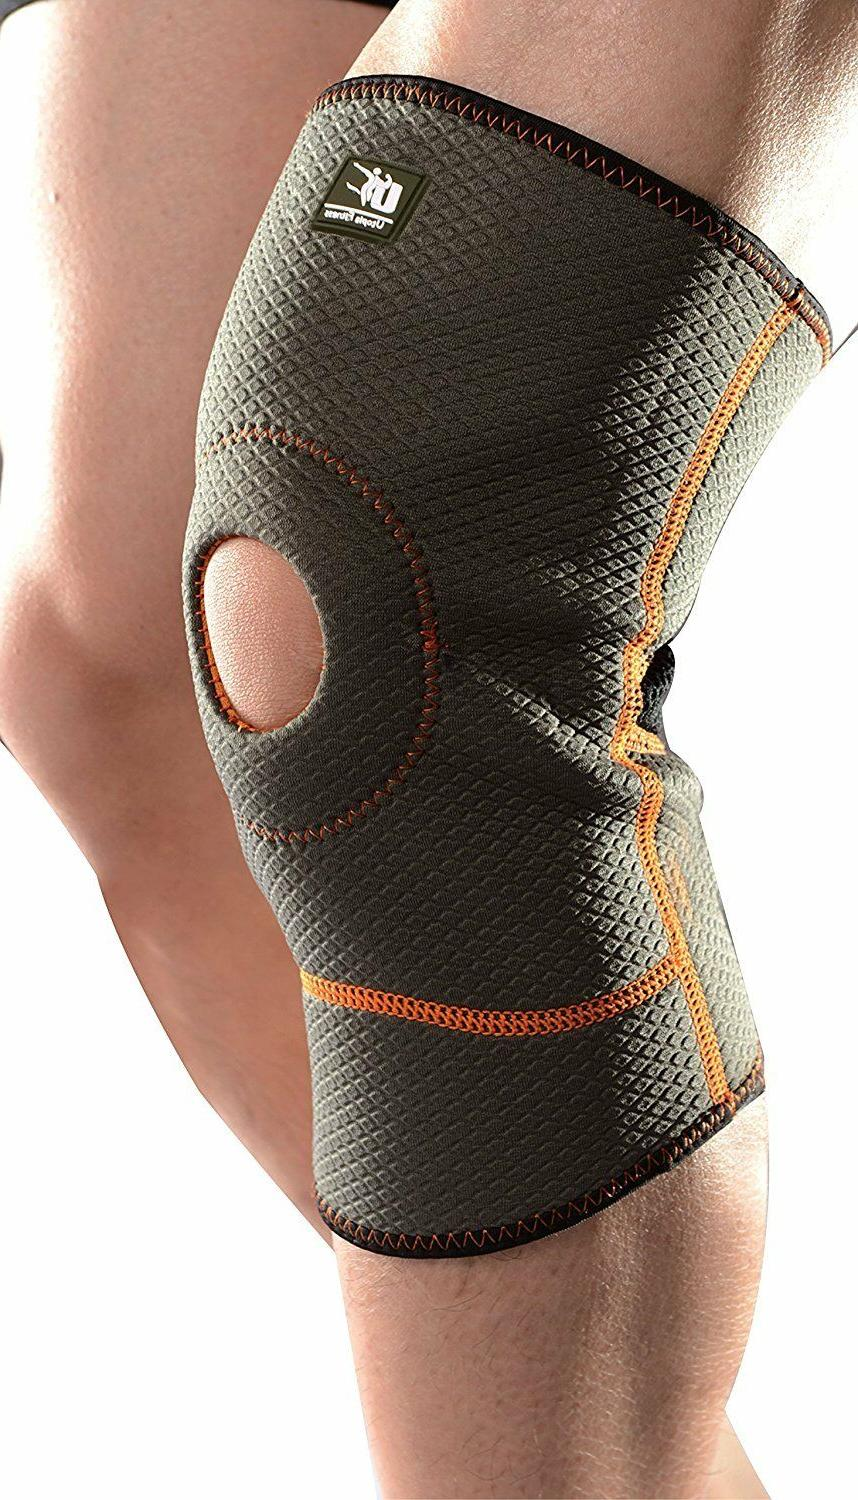 knee support brace compression sleeve for running